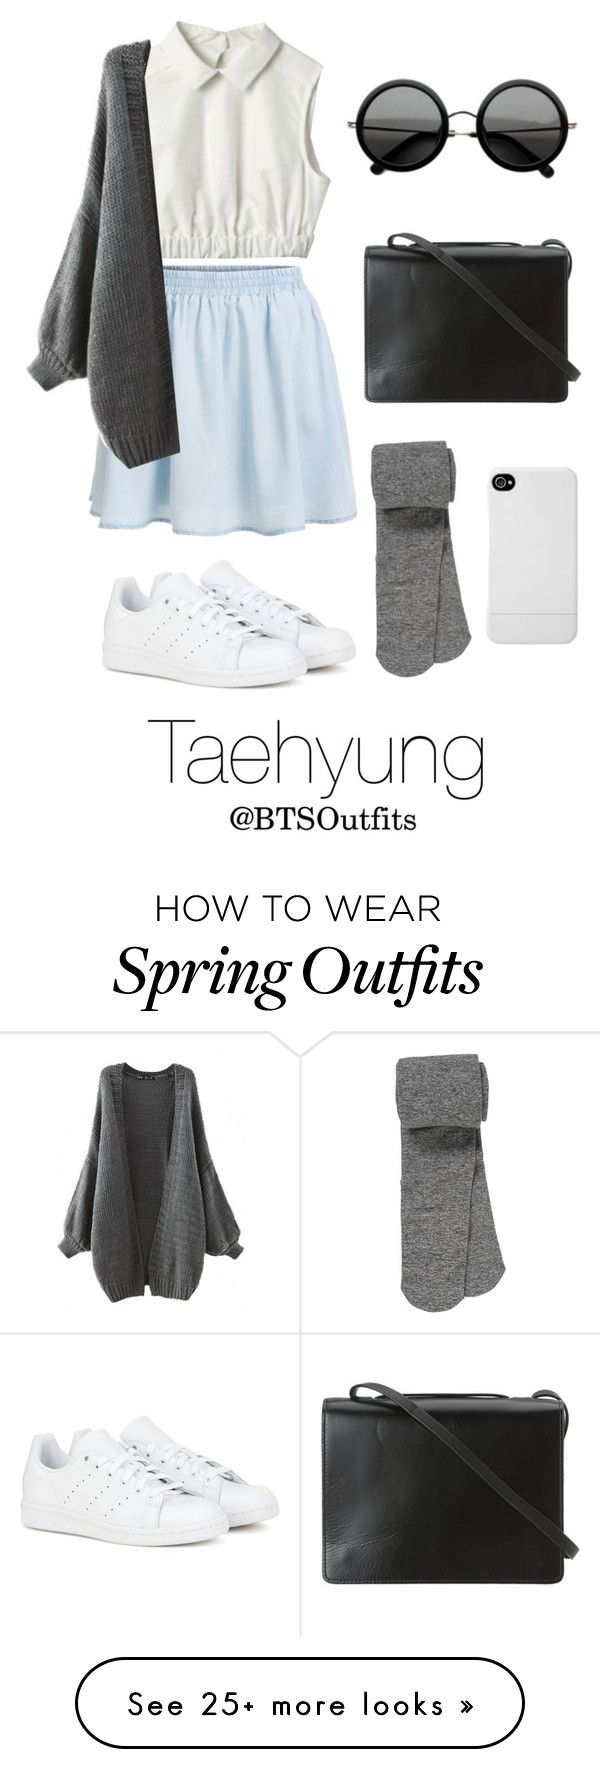 """""""Spring Outfit Inspired by Taehyung"""" by btsoutfits on Polyvore featuring moda, BCBGMAXAZRIA, The Row, adidas, maurices, Incase, women's clothing, women, female e woman"""